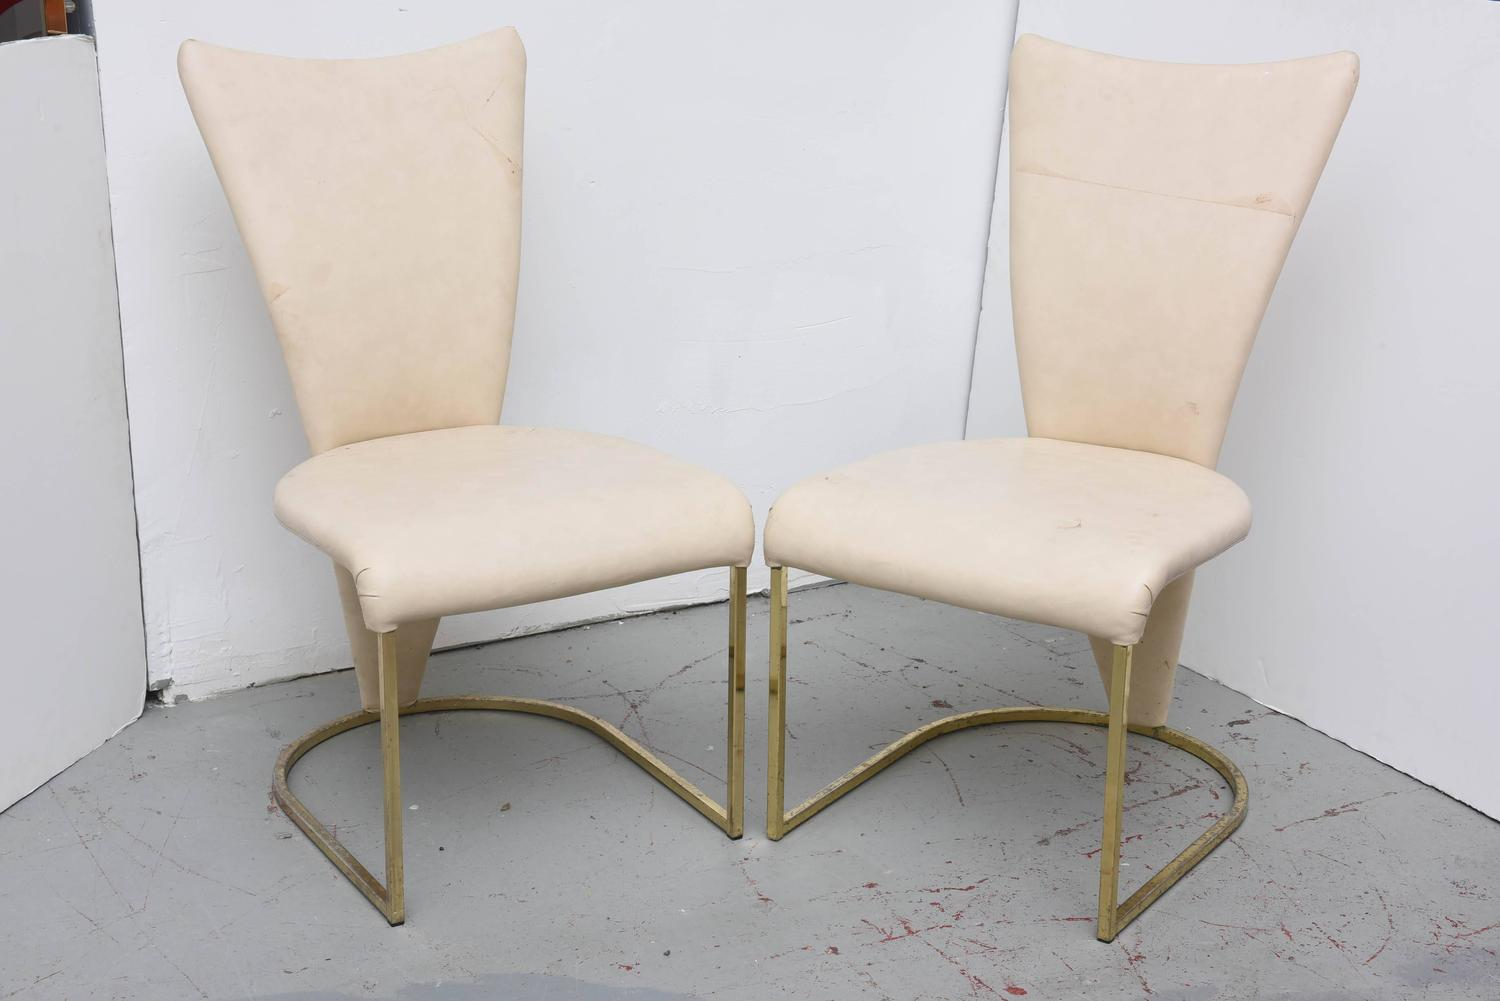 Design institute of america post mod brass dining chairs for 1980s chair design